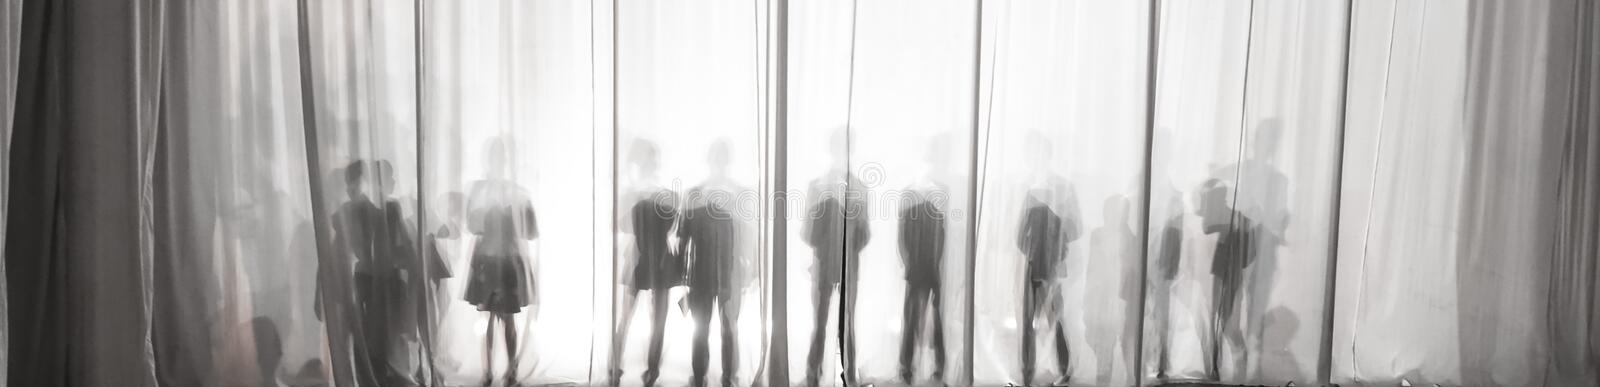 The silhouette of the men behind the curtain in the theater on stage, the shadow behind the scenes is similar to the white and bla. Ck piano keys stock photography